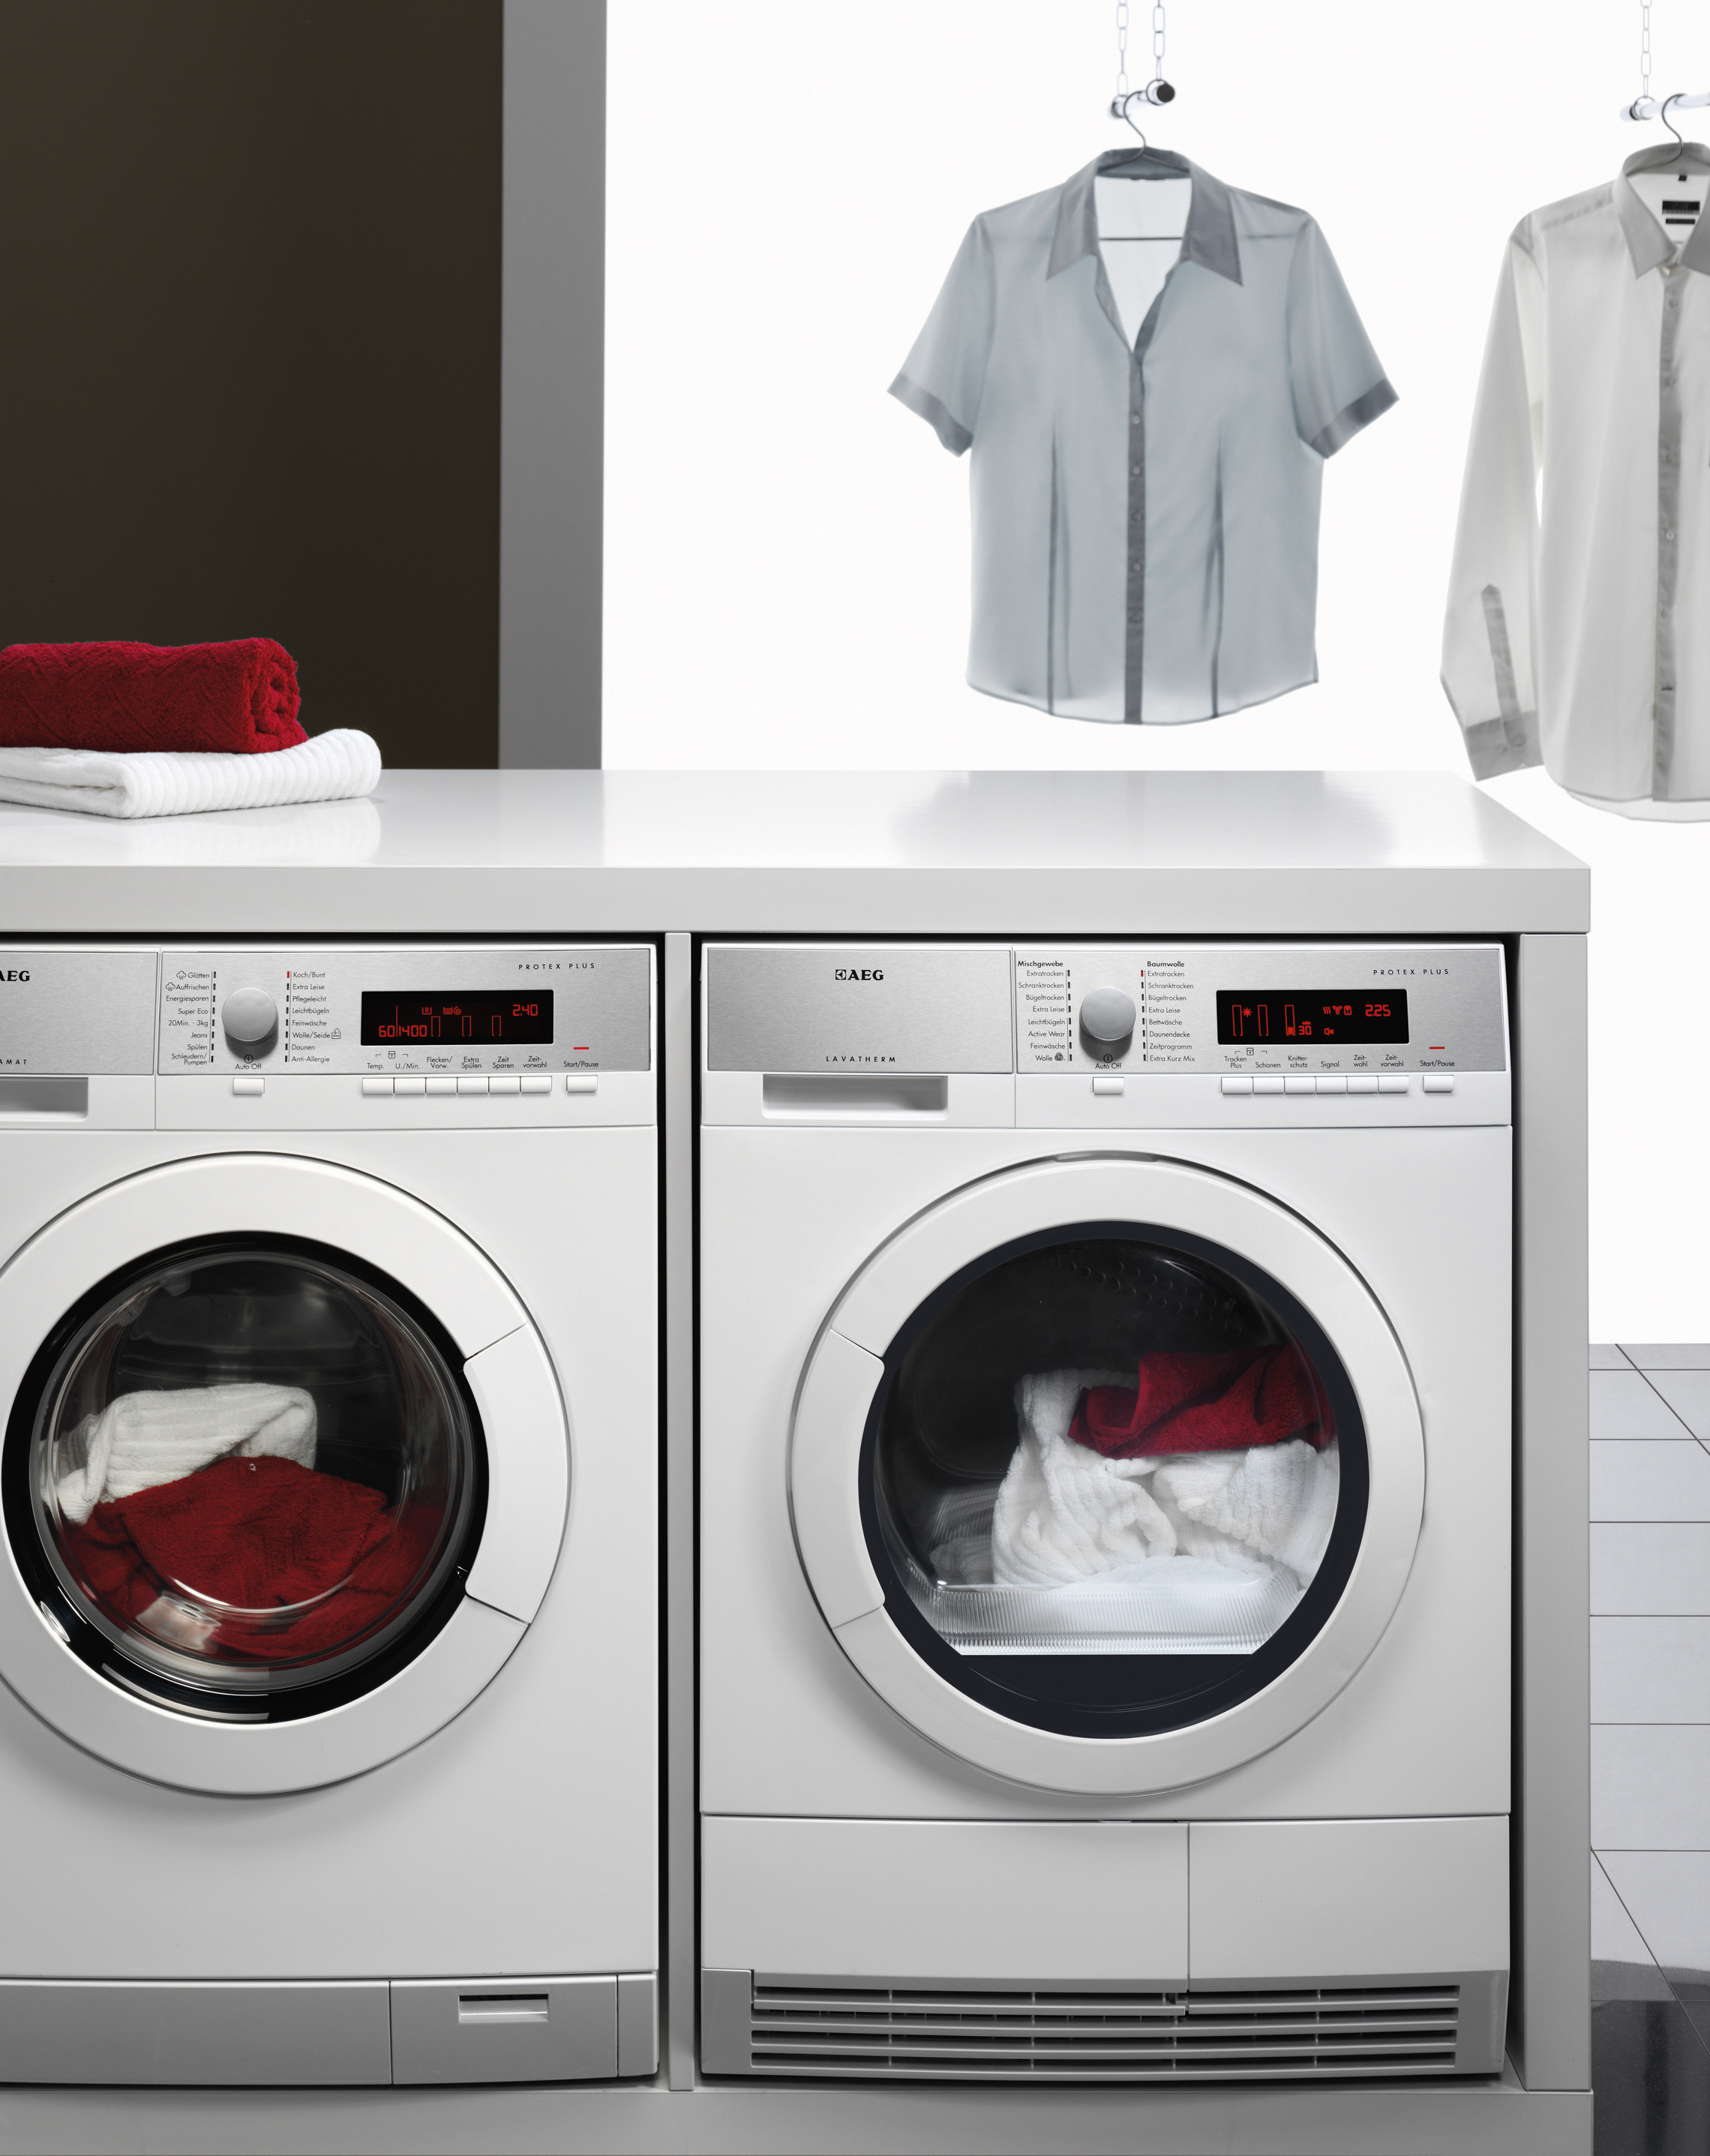 Washing Machines And Dryers ~ A laundry lesson from aeg rachel ogden journalist